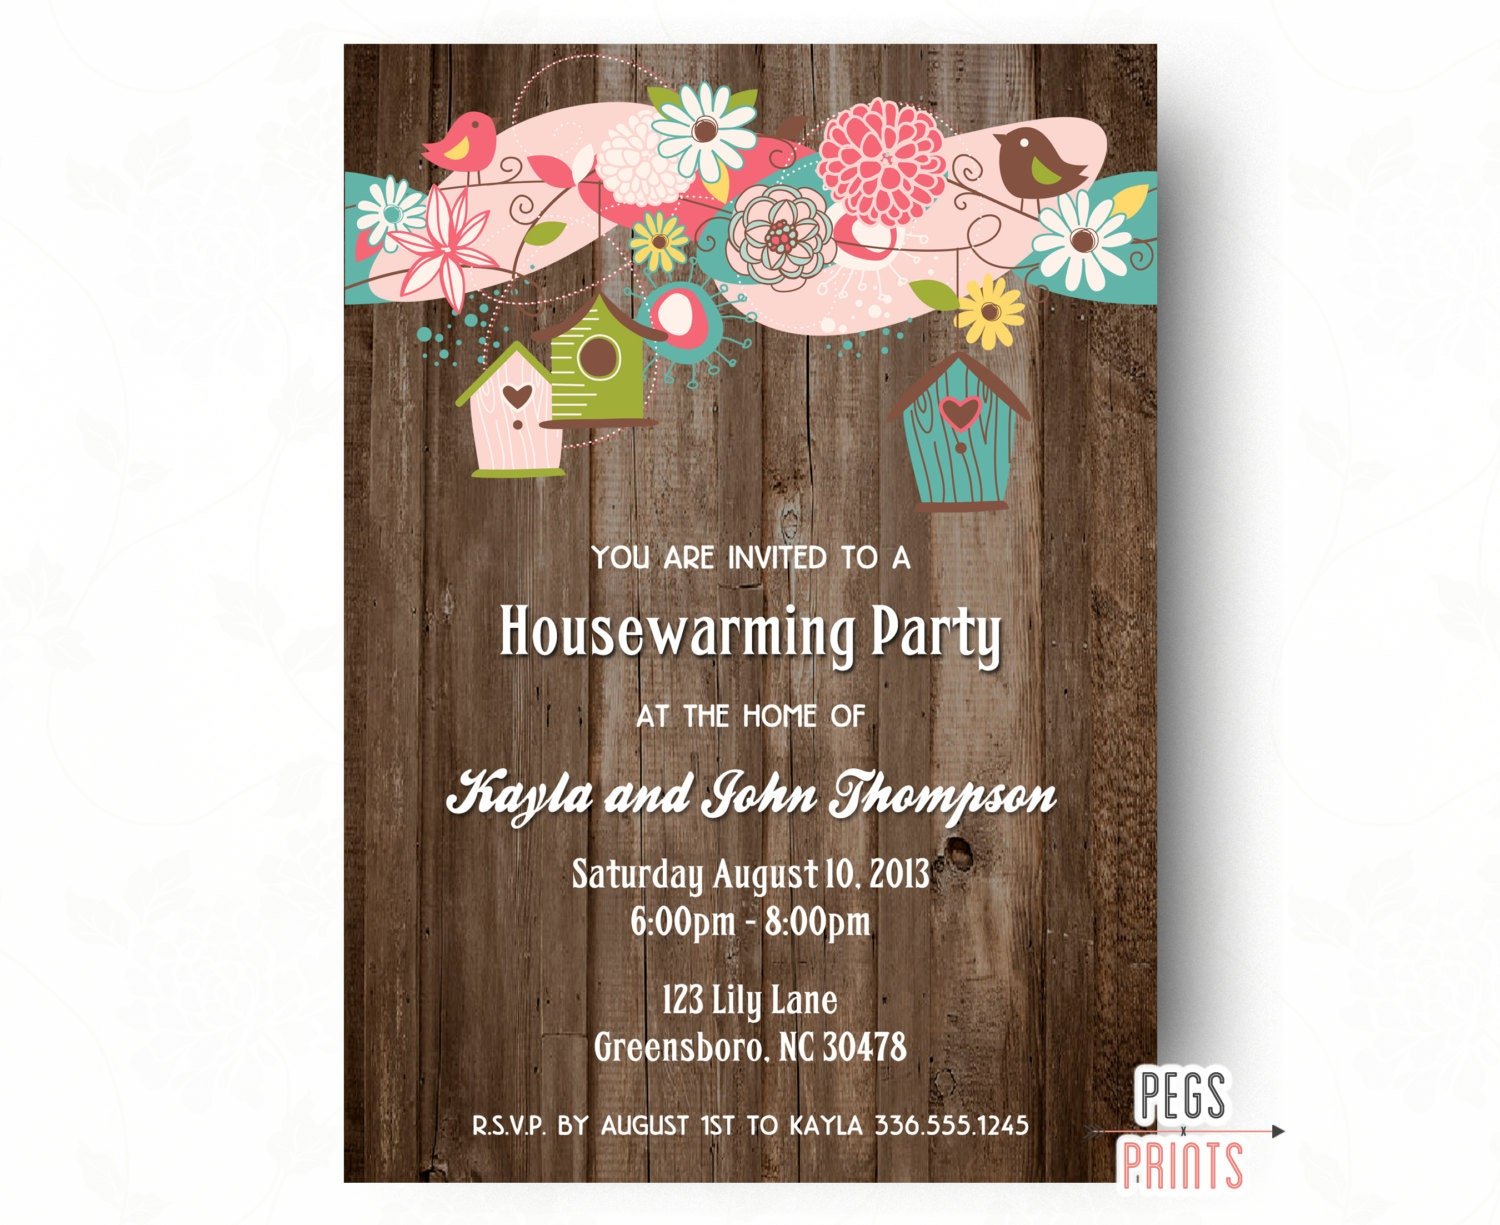 rustic housewarming party invitation rustic wood. Black Bedroom Furniture Sets. Home Design Ideas